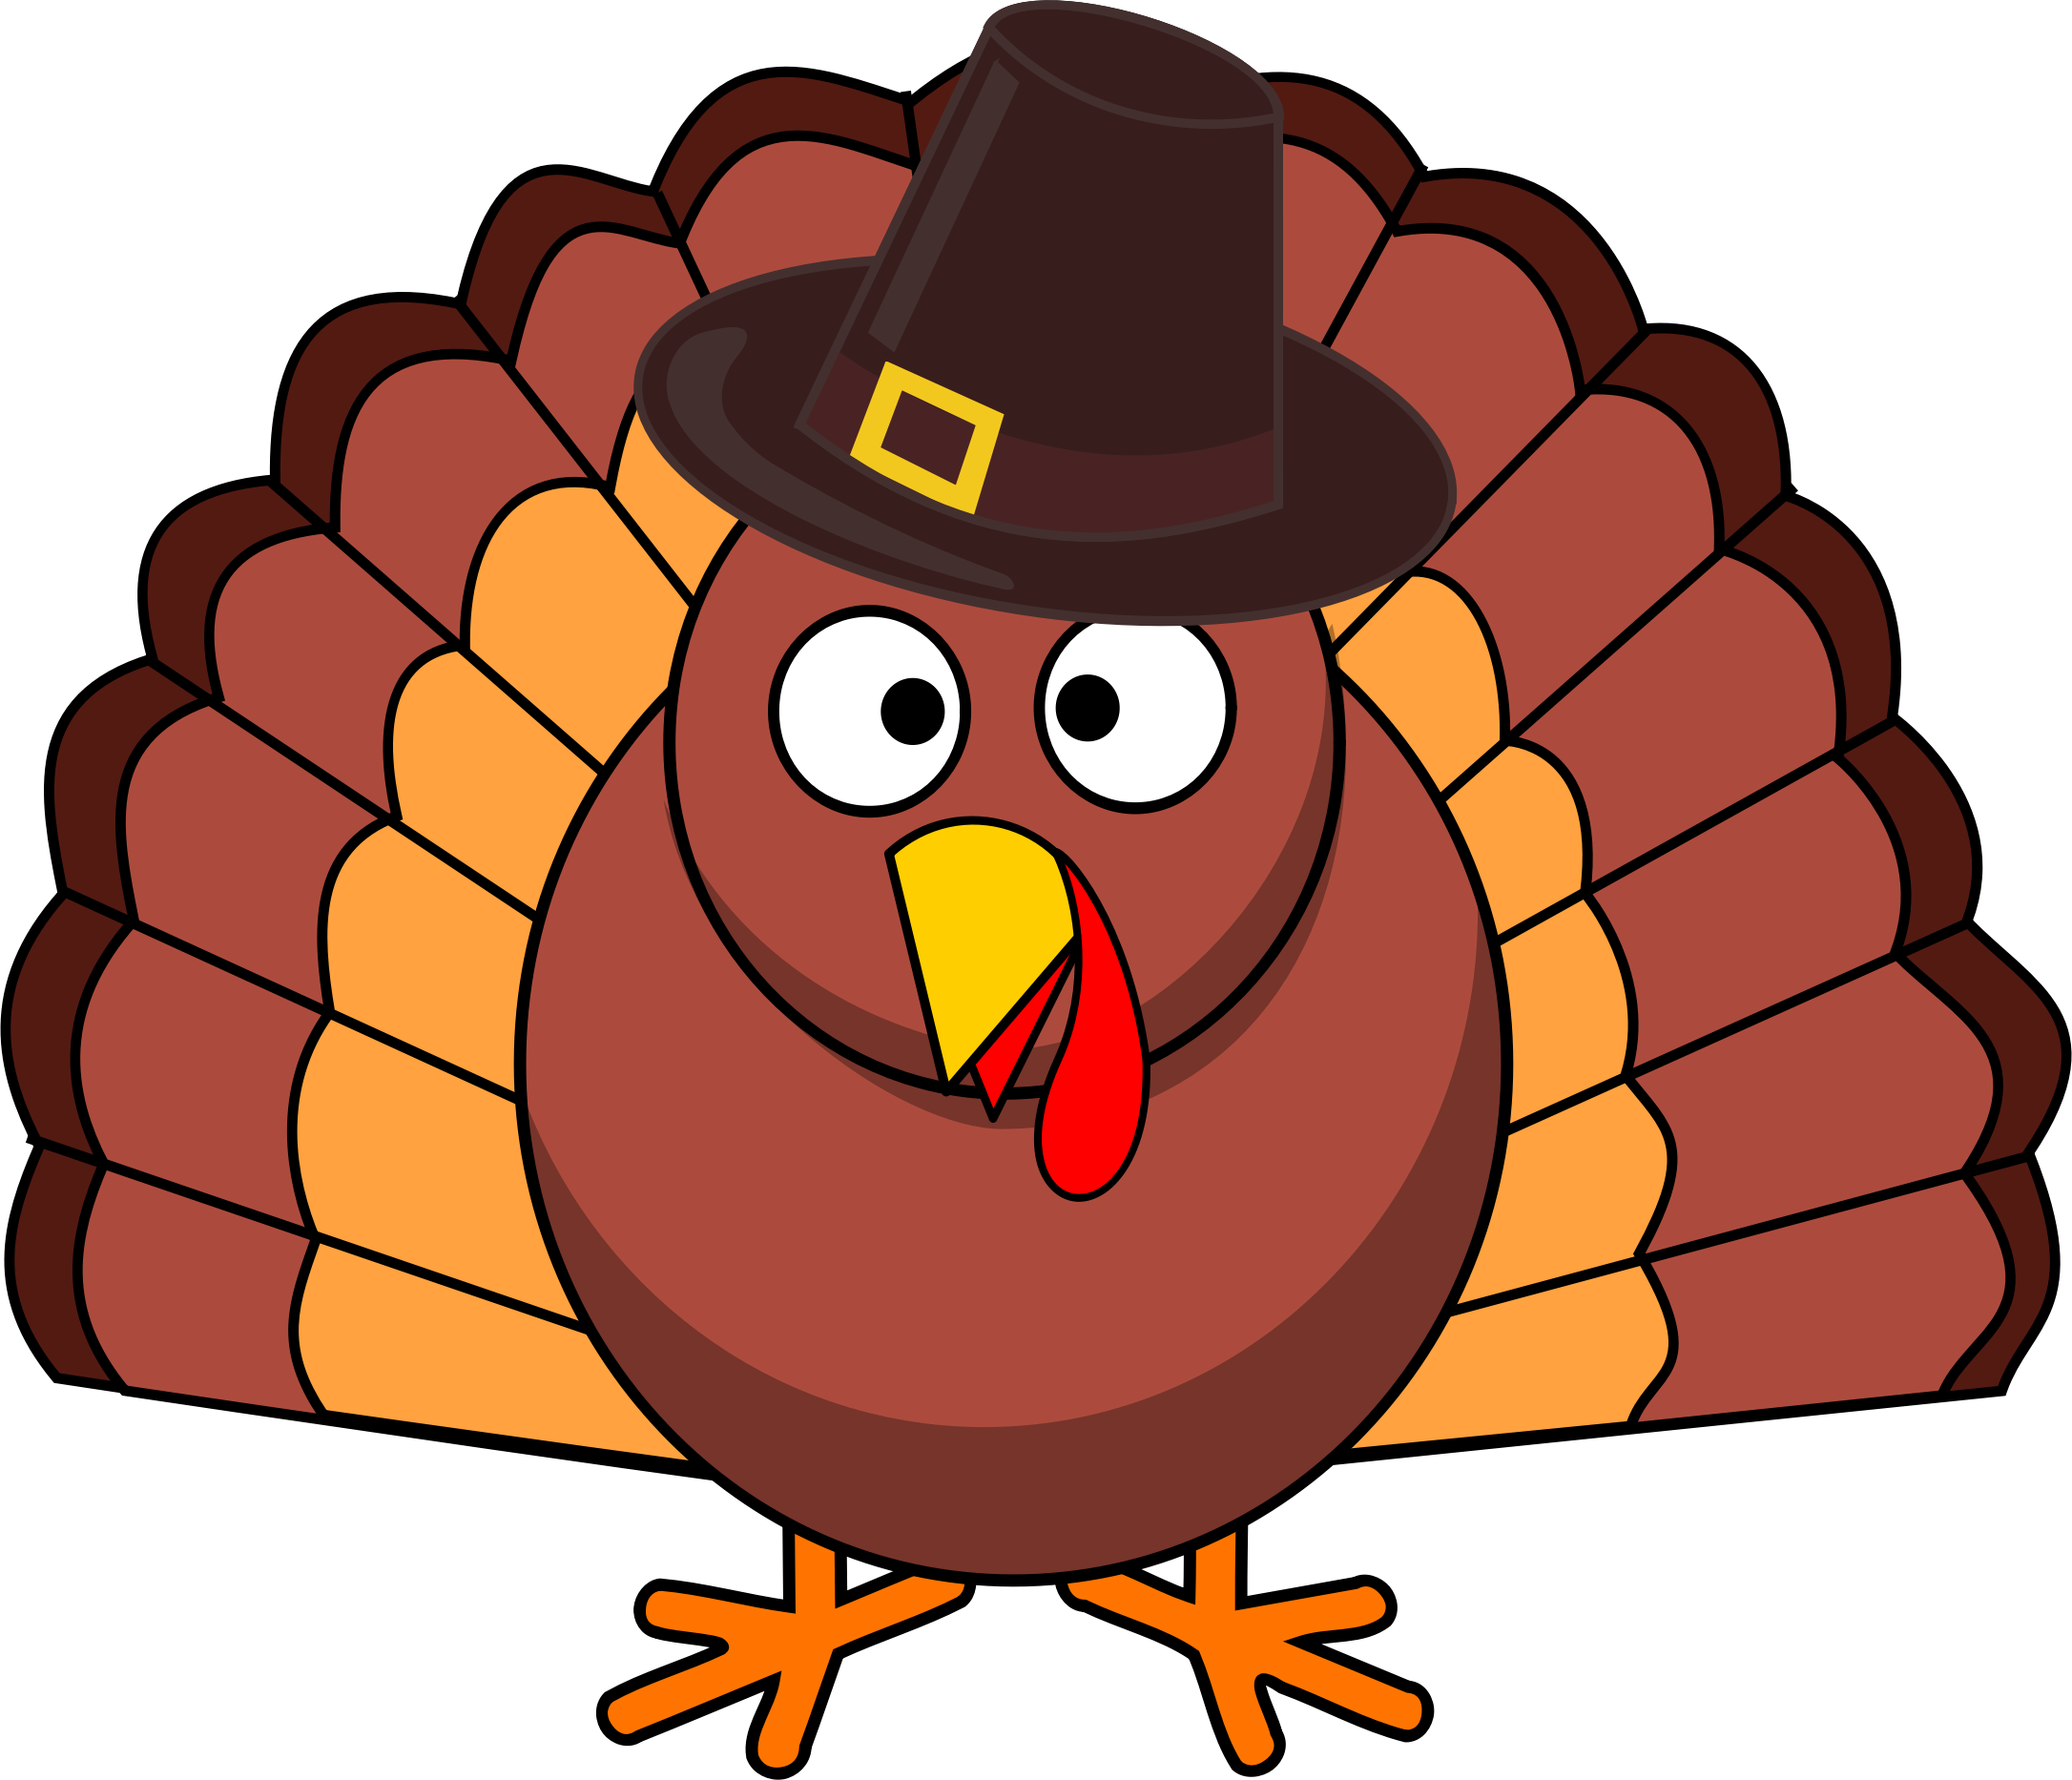 Happy thanksgiving town clipart graphic download Thanksgiving Turkey Drawing at GetDrawings.com | Free for personal ... graphic download